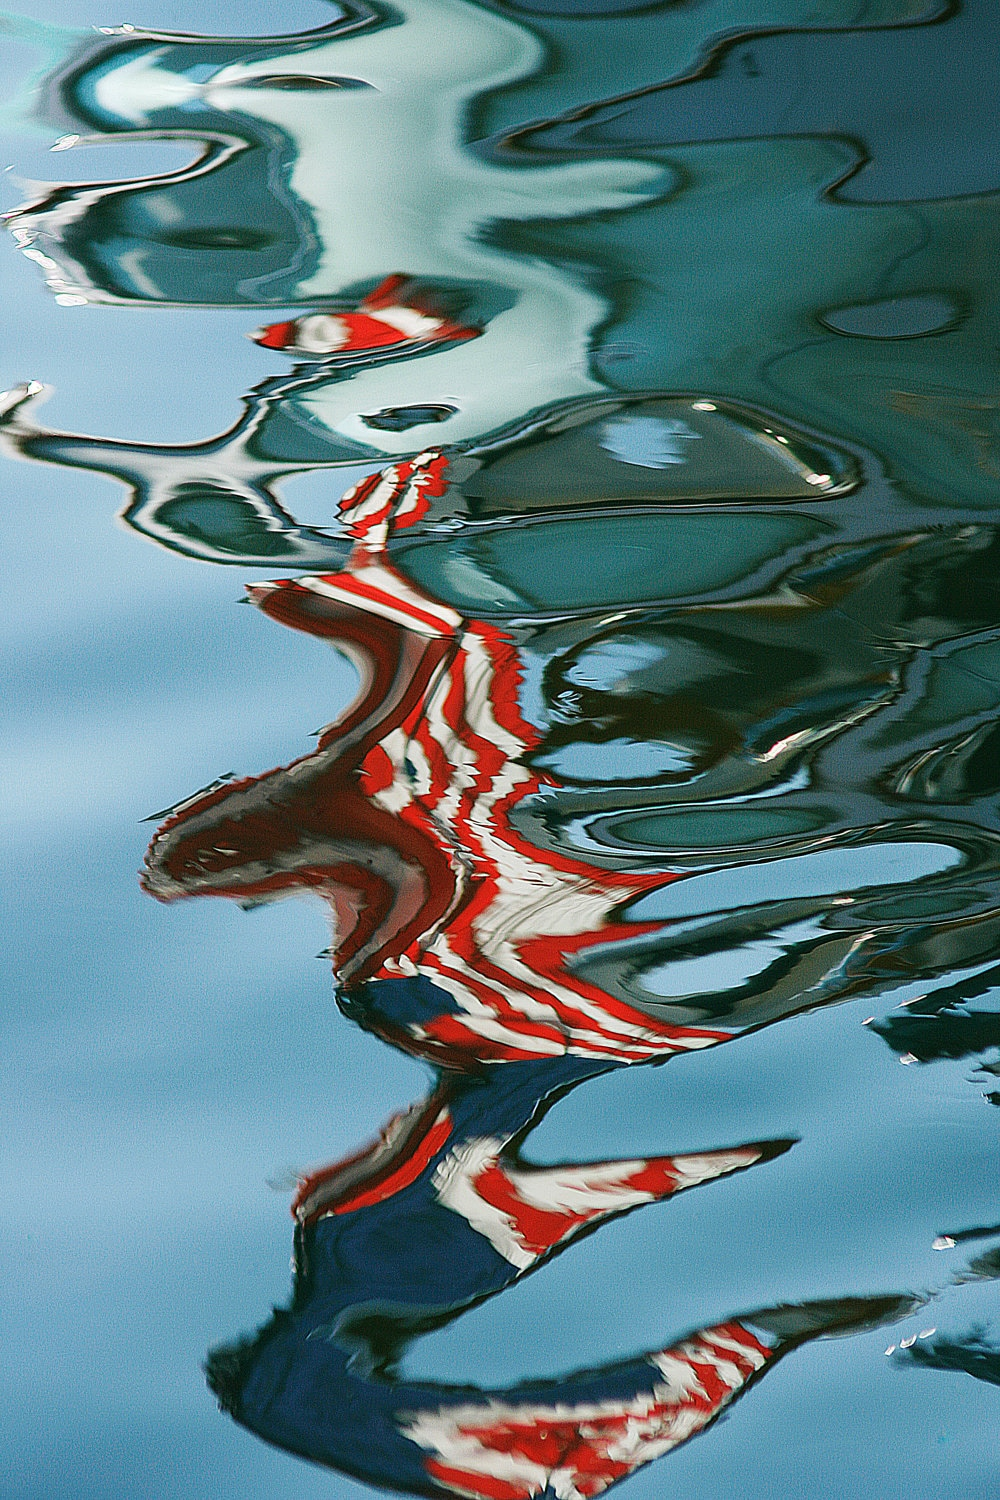 American Flag, 5x7 Fine Art Photography, Abstract Photography, Color Reflections - CindiRessler